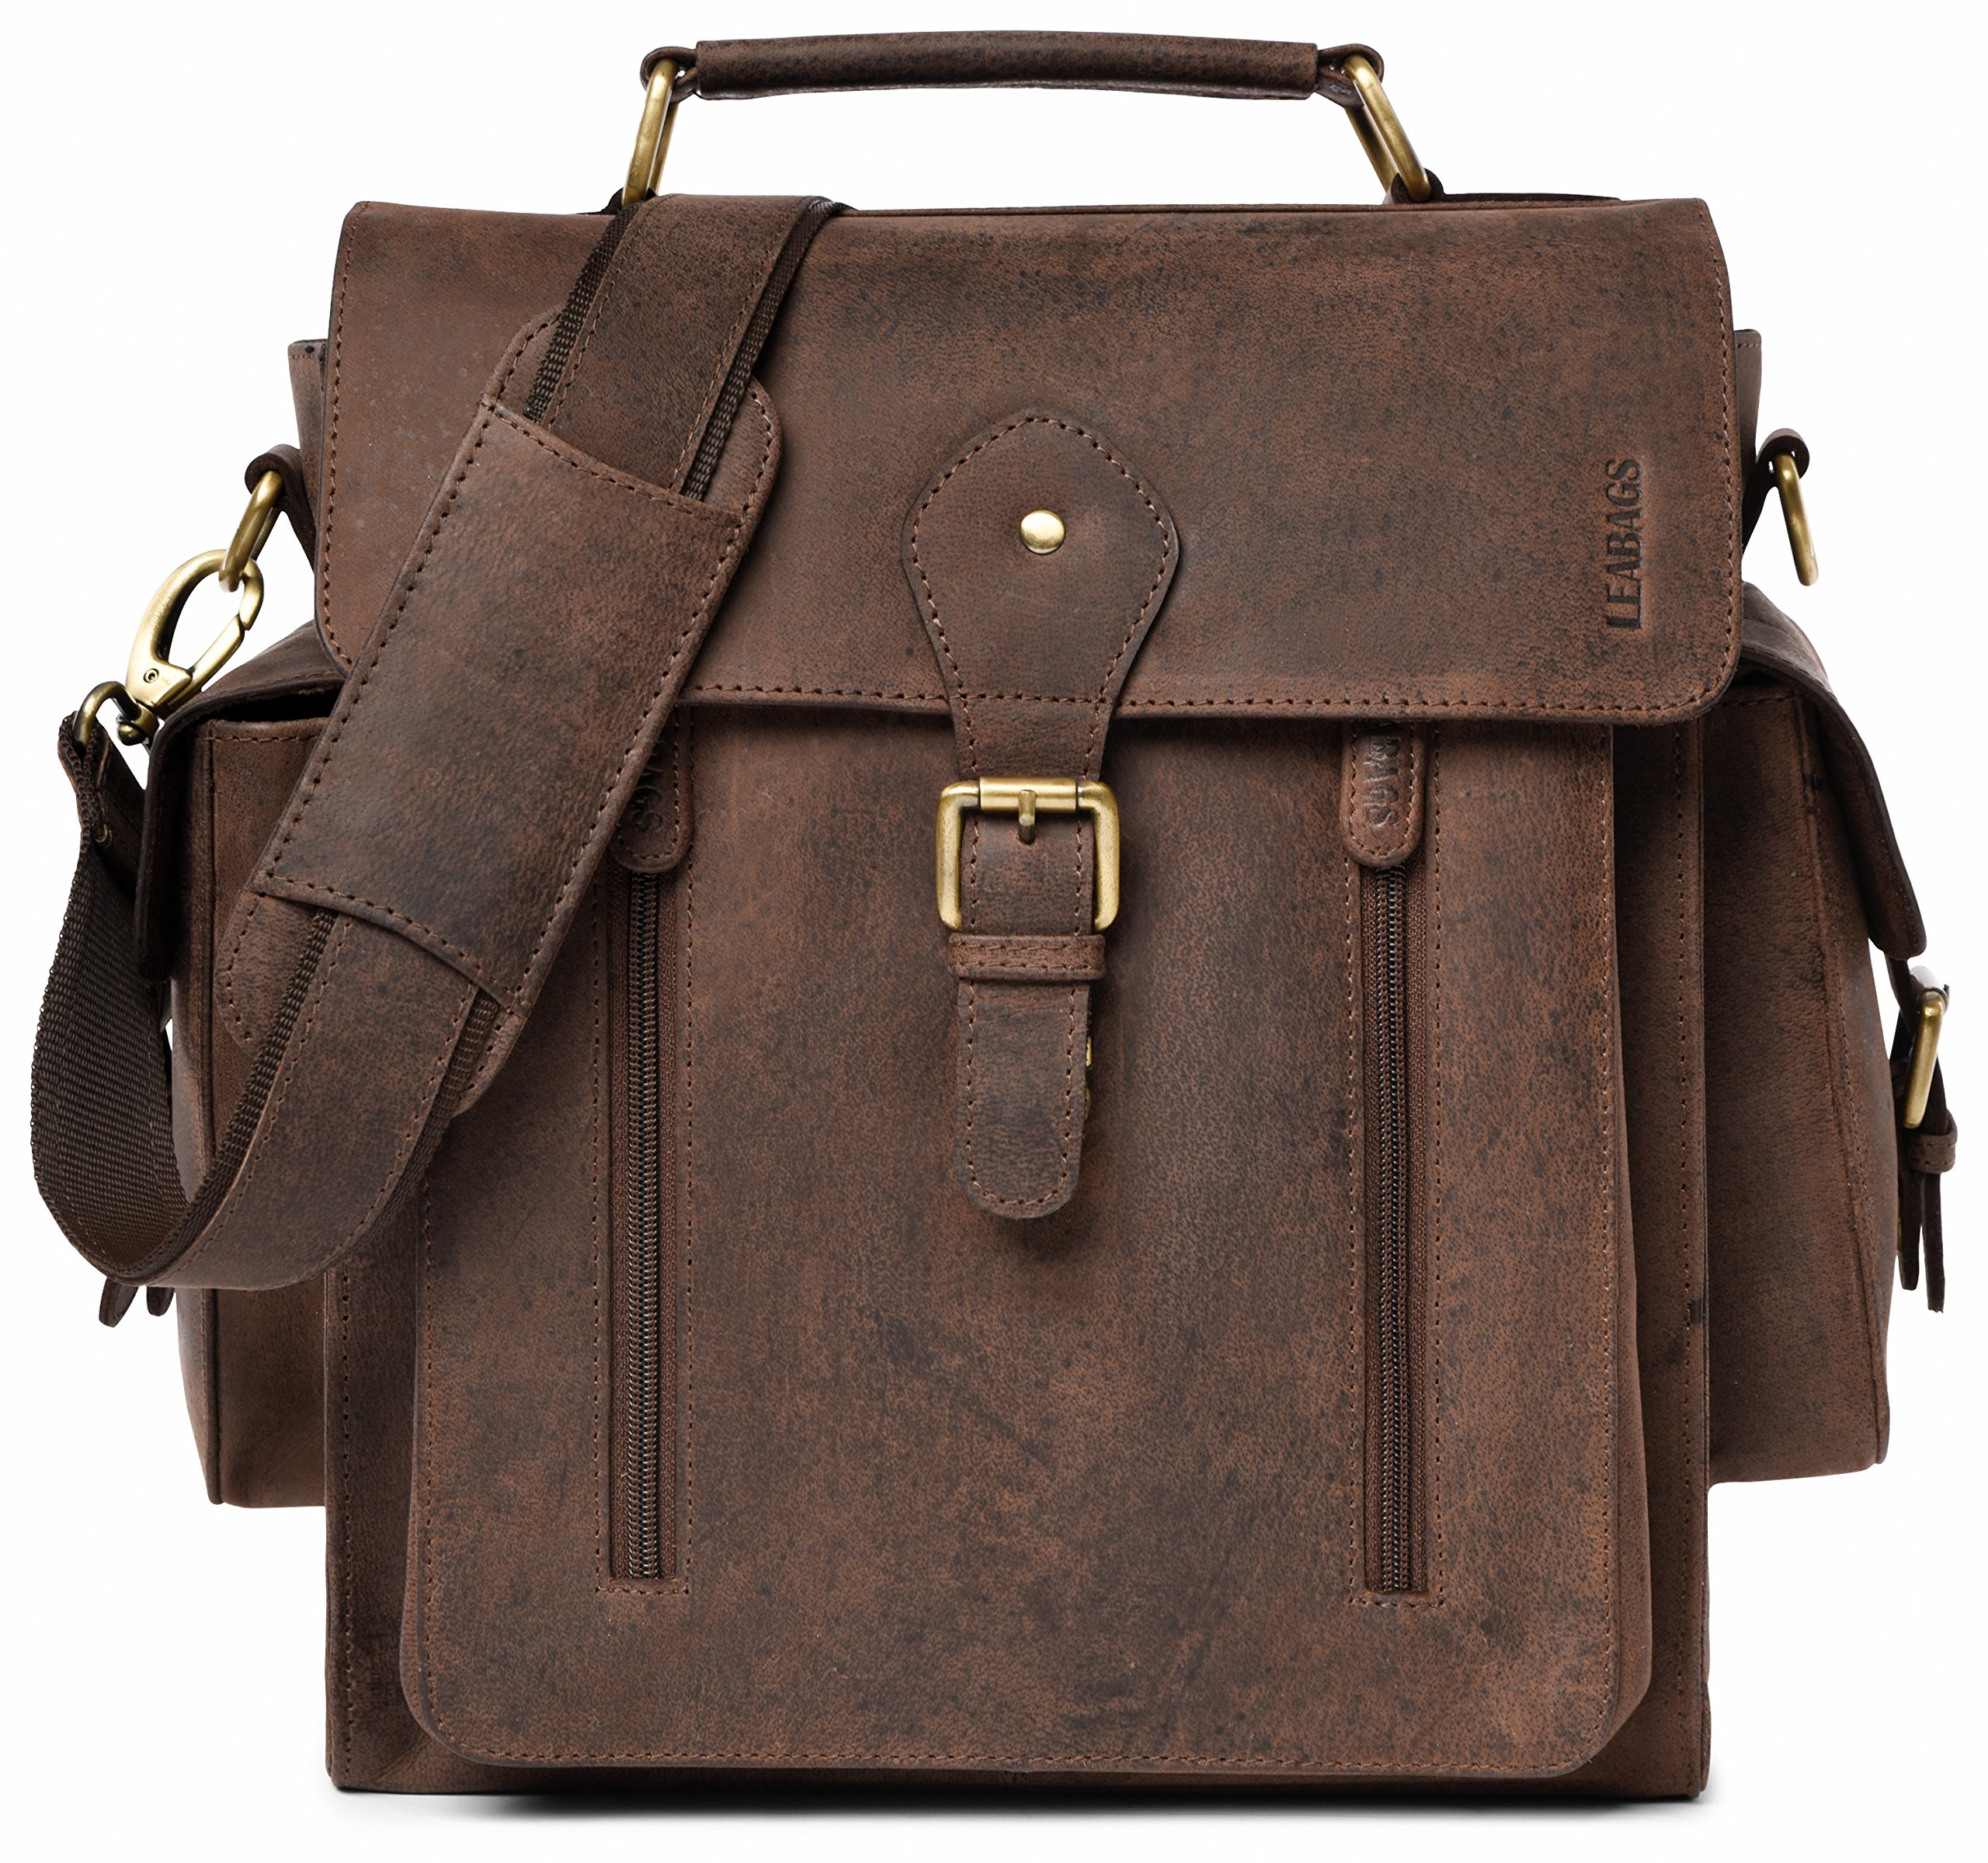 LEABAGS Lincoln genuine buffalo leather camera bag in vintage style - Nutmeg